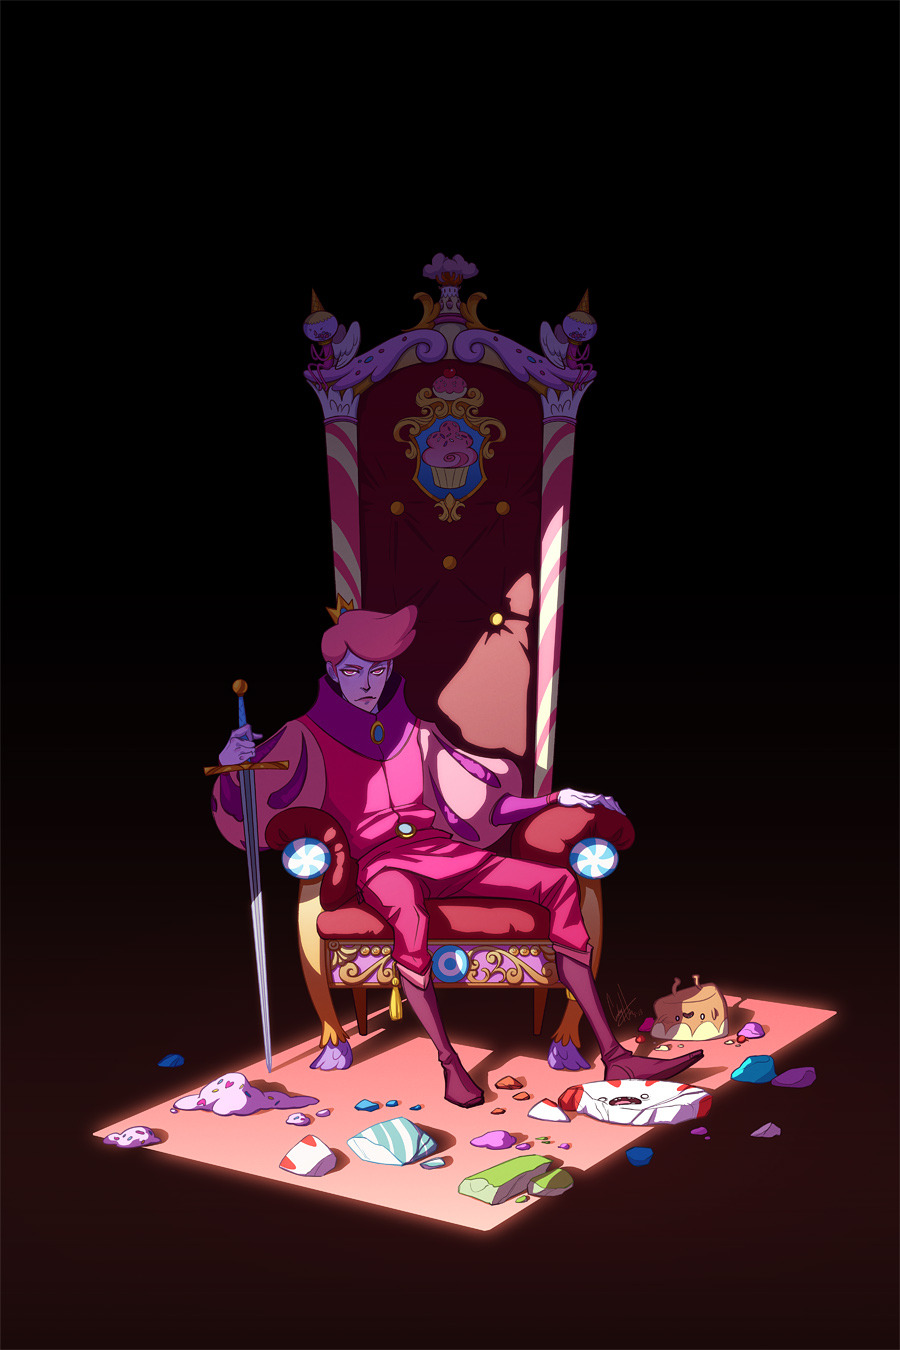 kisskicker:  Prince Gumball's path to the throne was brutal. Fionna wasn't around during the Sugar Wars; Gumball distracts her by acting super bland and wearing disco pants. Marshall Lee knows the truth, but as Chaotic Neutral, he just can't bring himself to give a shit. ETA: Nhyworks just gave me the amazing pun 'Game of Scones.' Brb dying ok.